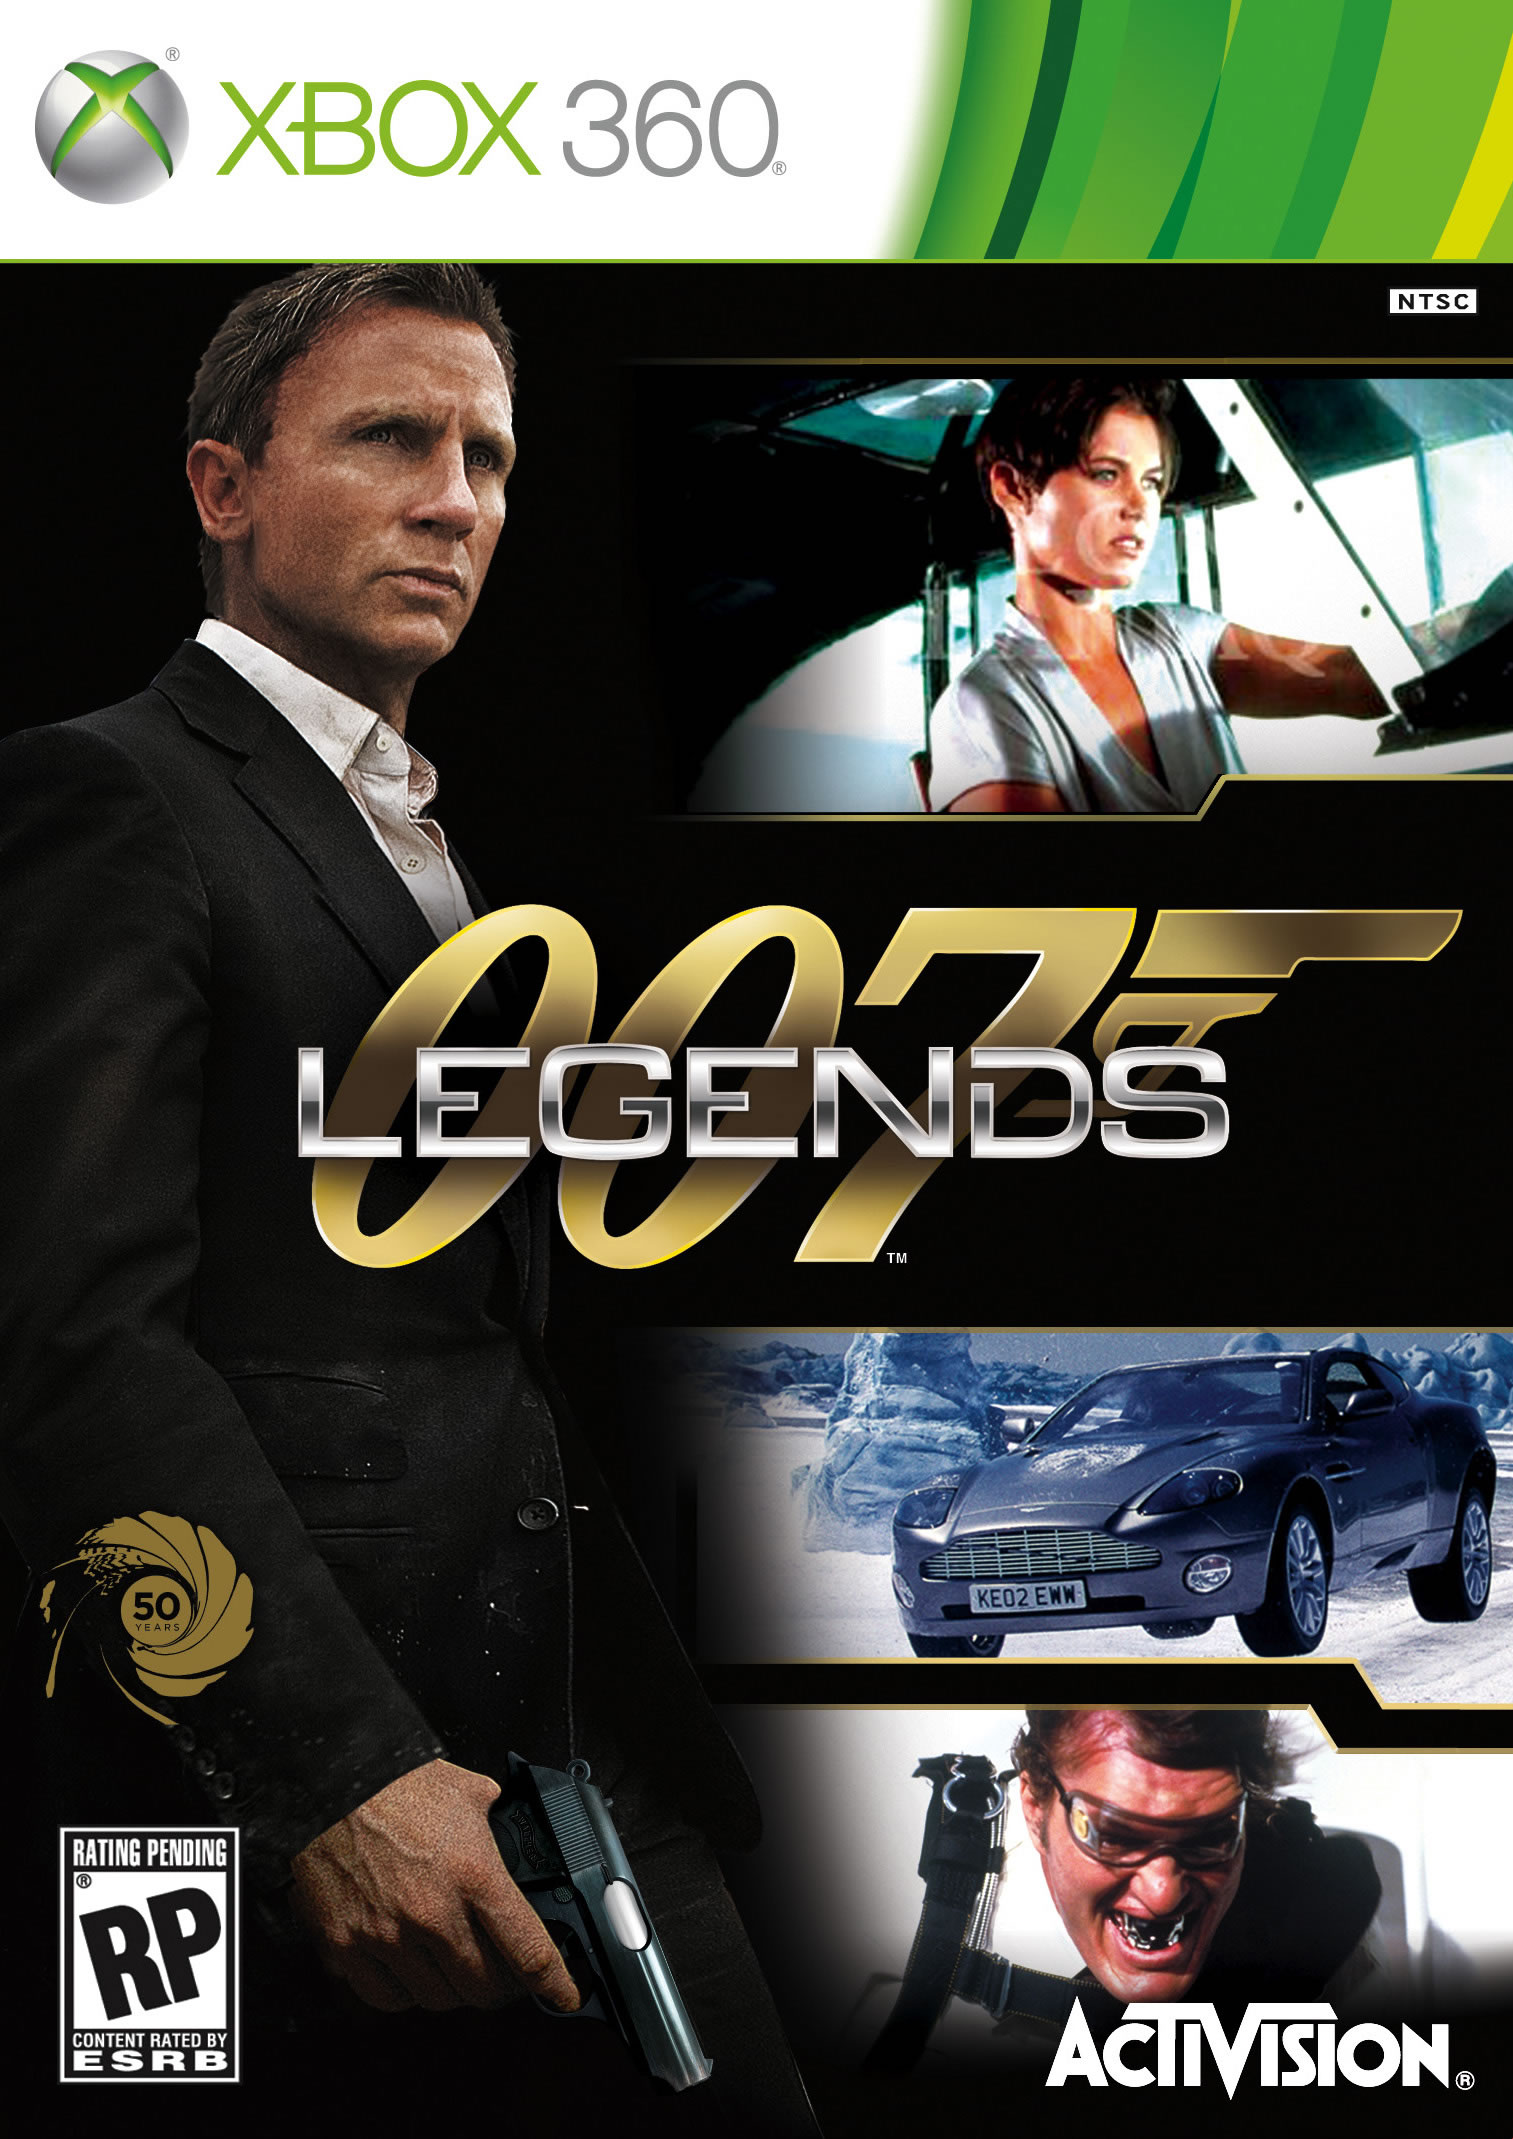 007 legends activision